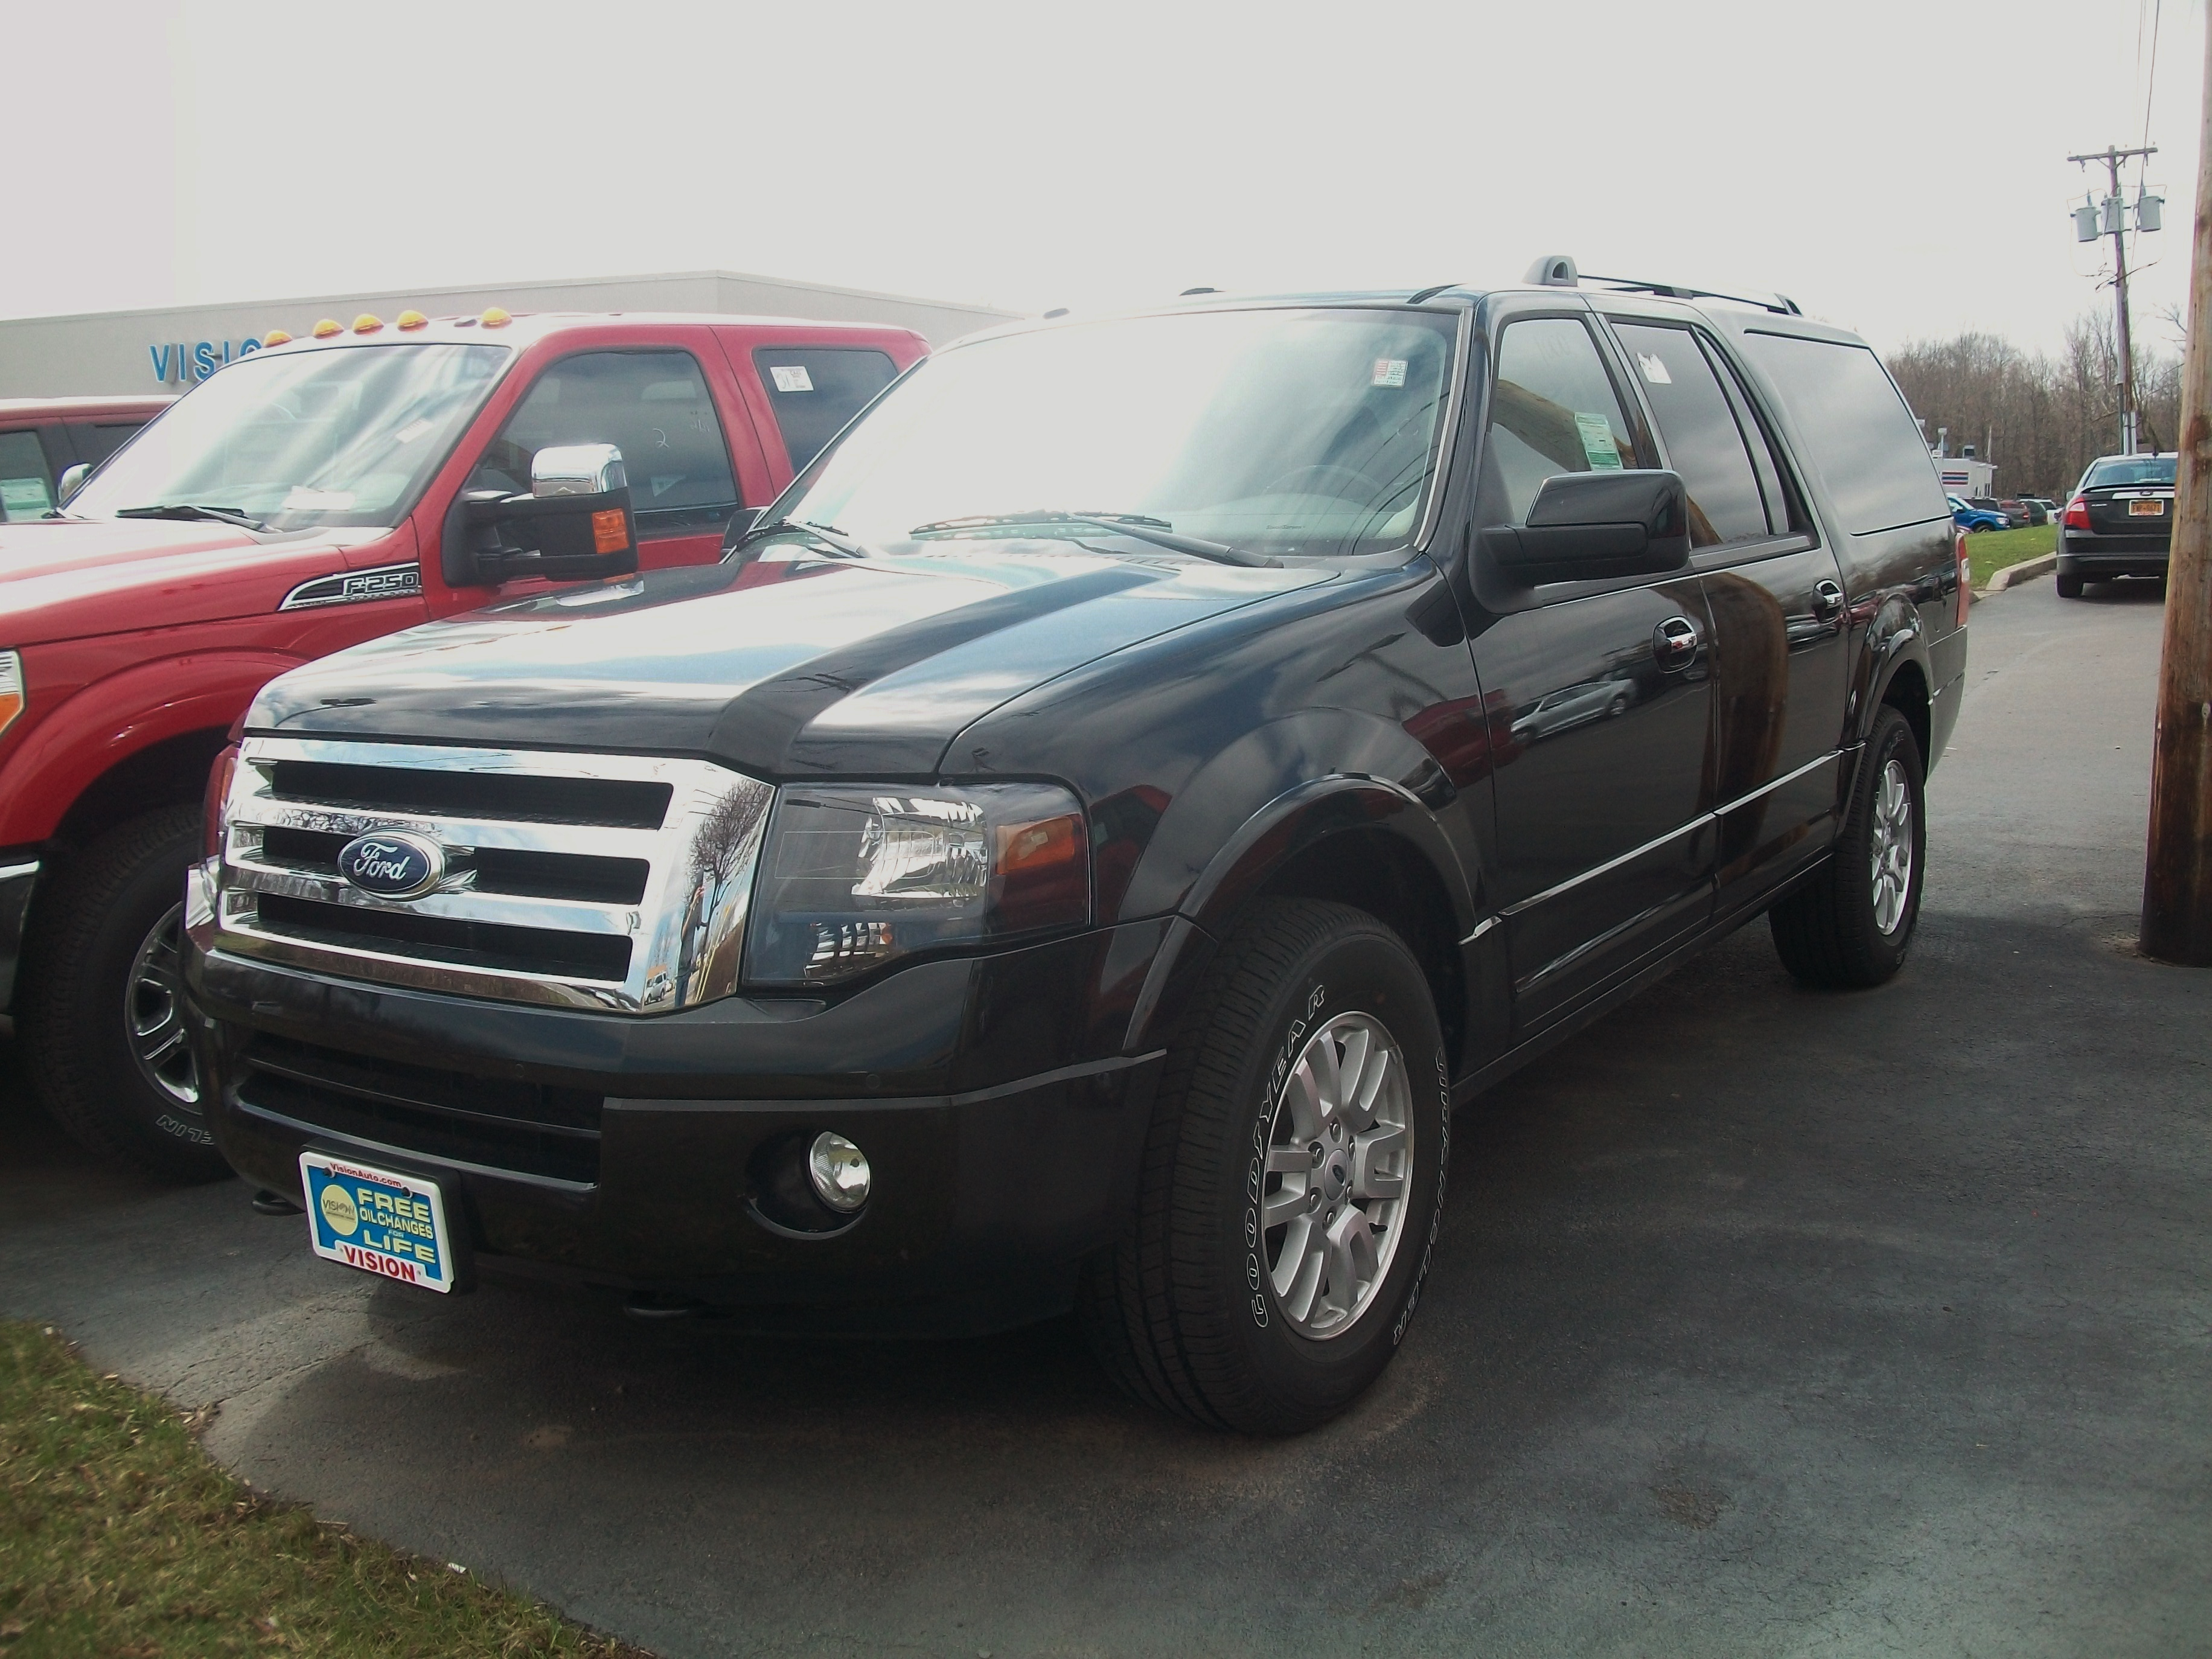 name performance bombers expedition conversion ford views excursion diesel zpshinnctsz